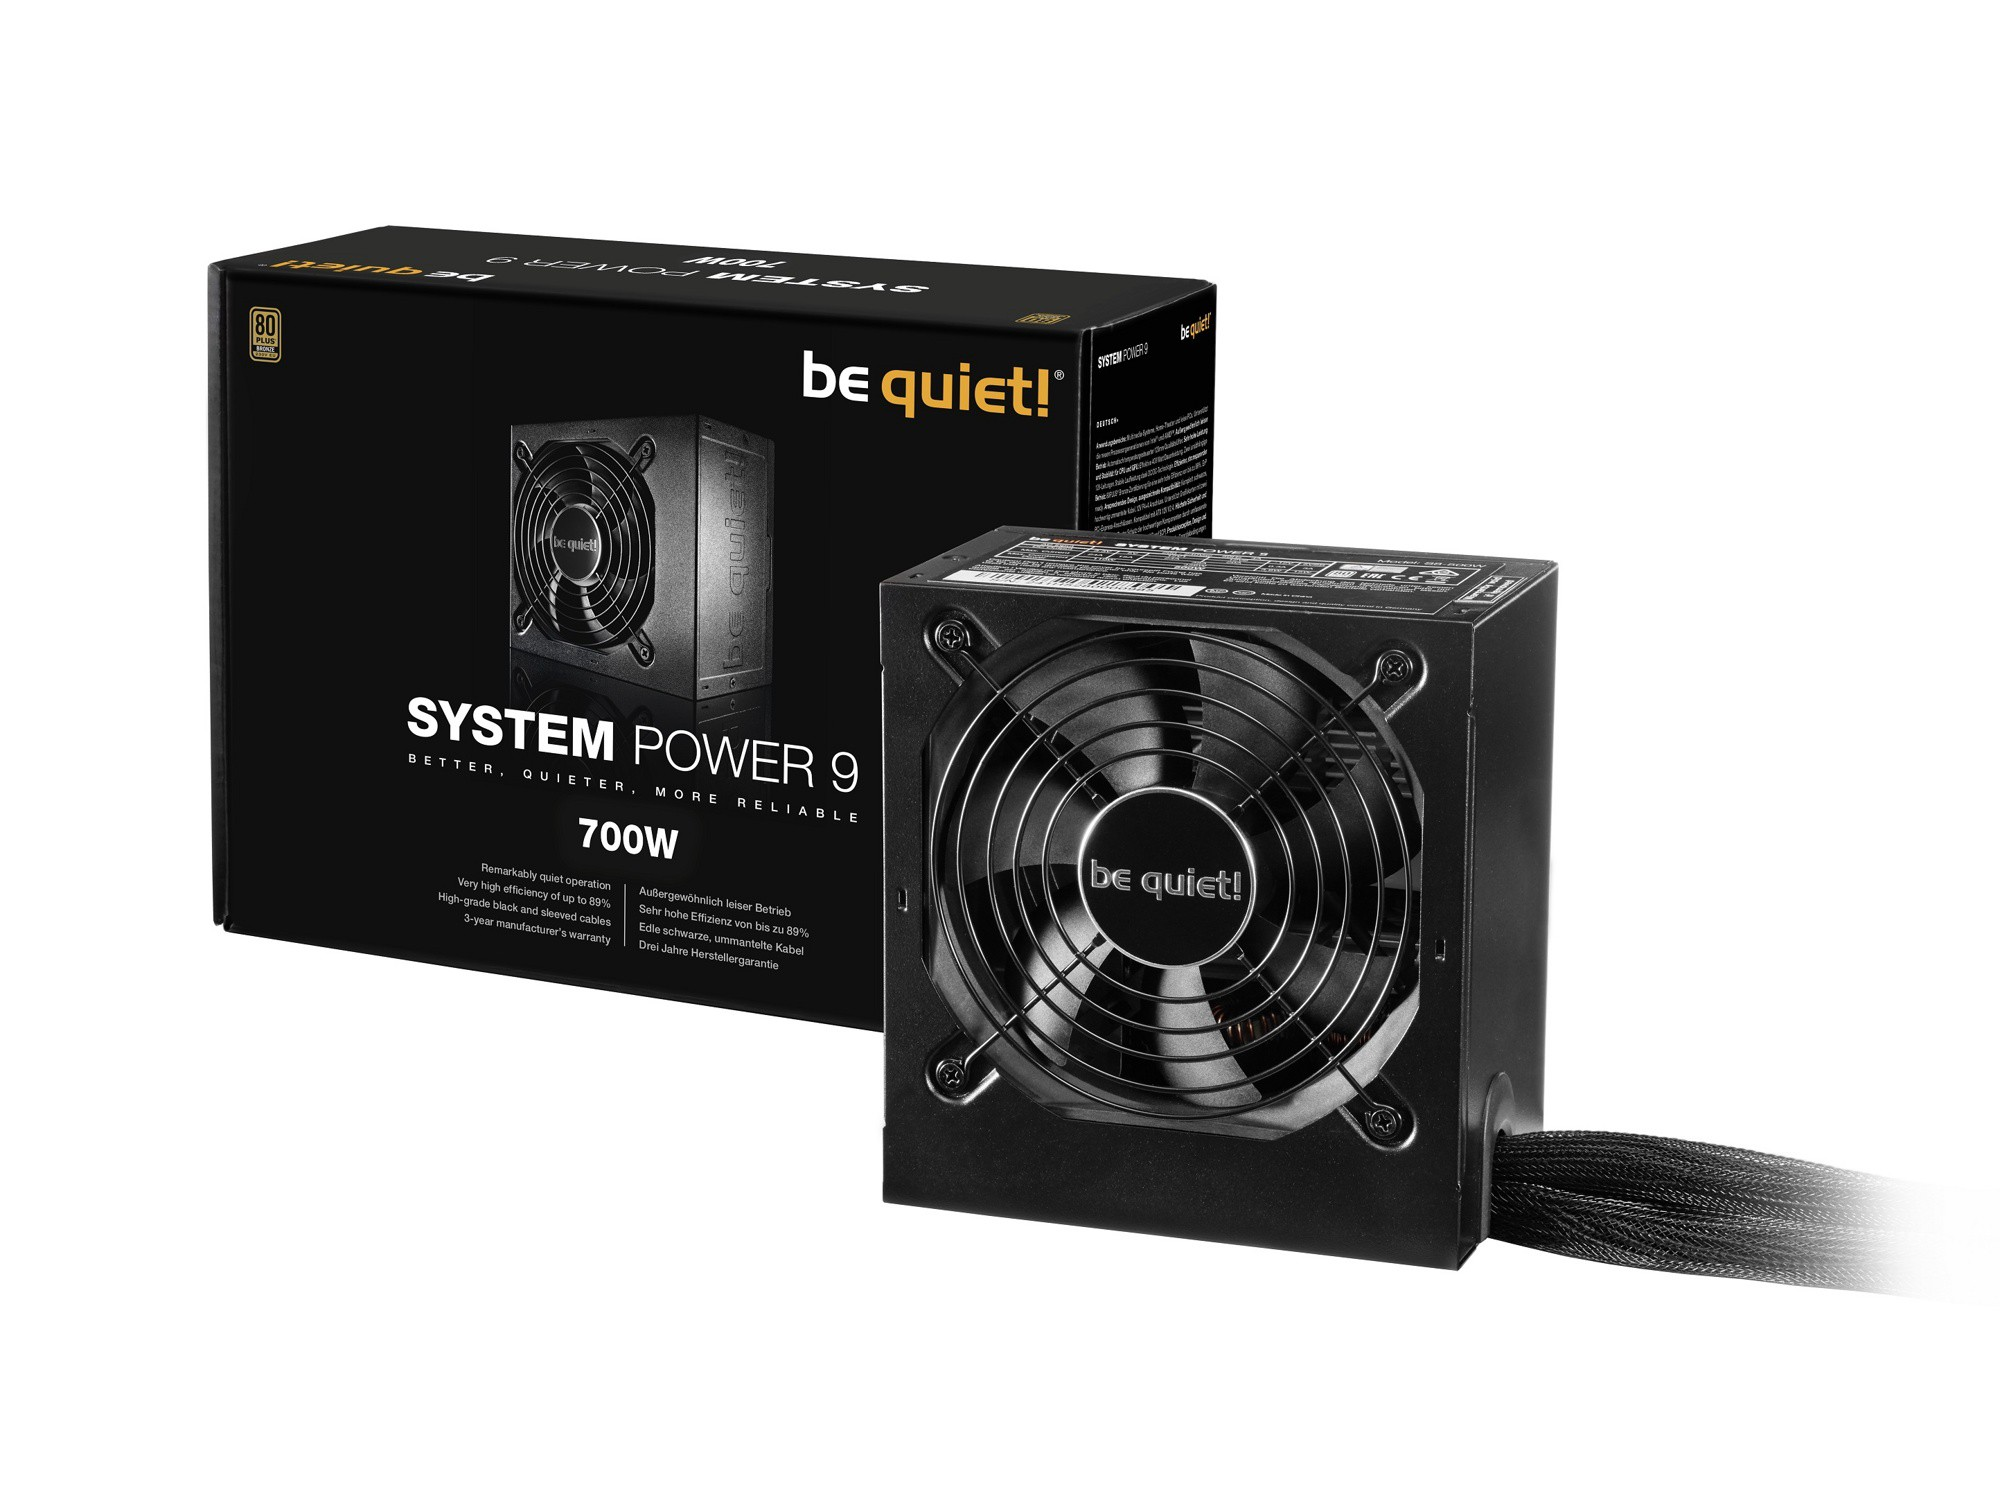 Блок питания 700W be quiet! System Power 9 (BN248) (24+8pin, 4x6/8pin, 2xMolex, 6xSATA, 80+ Bronze)